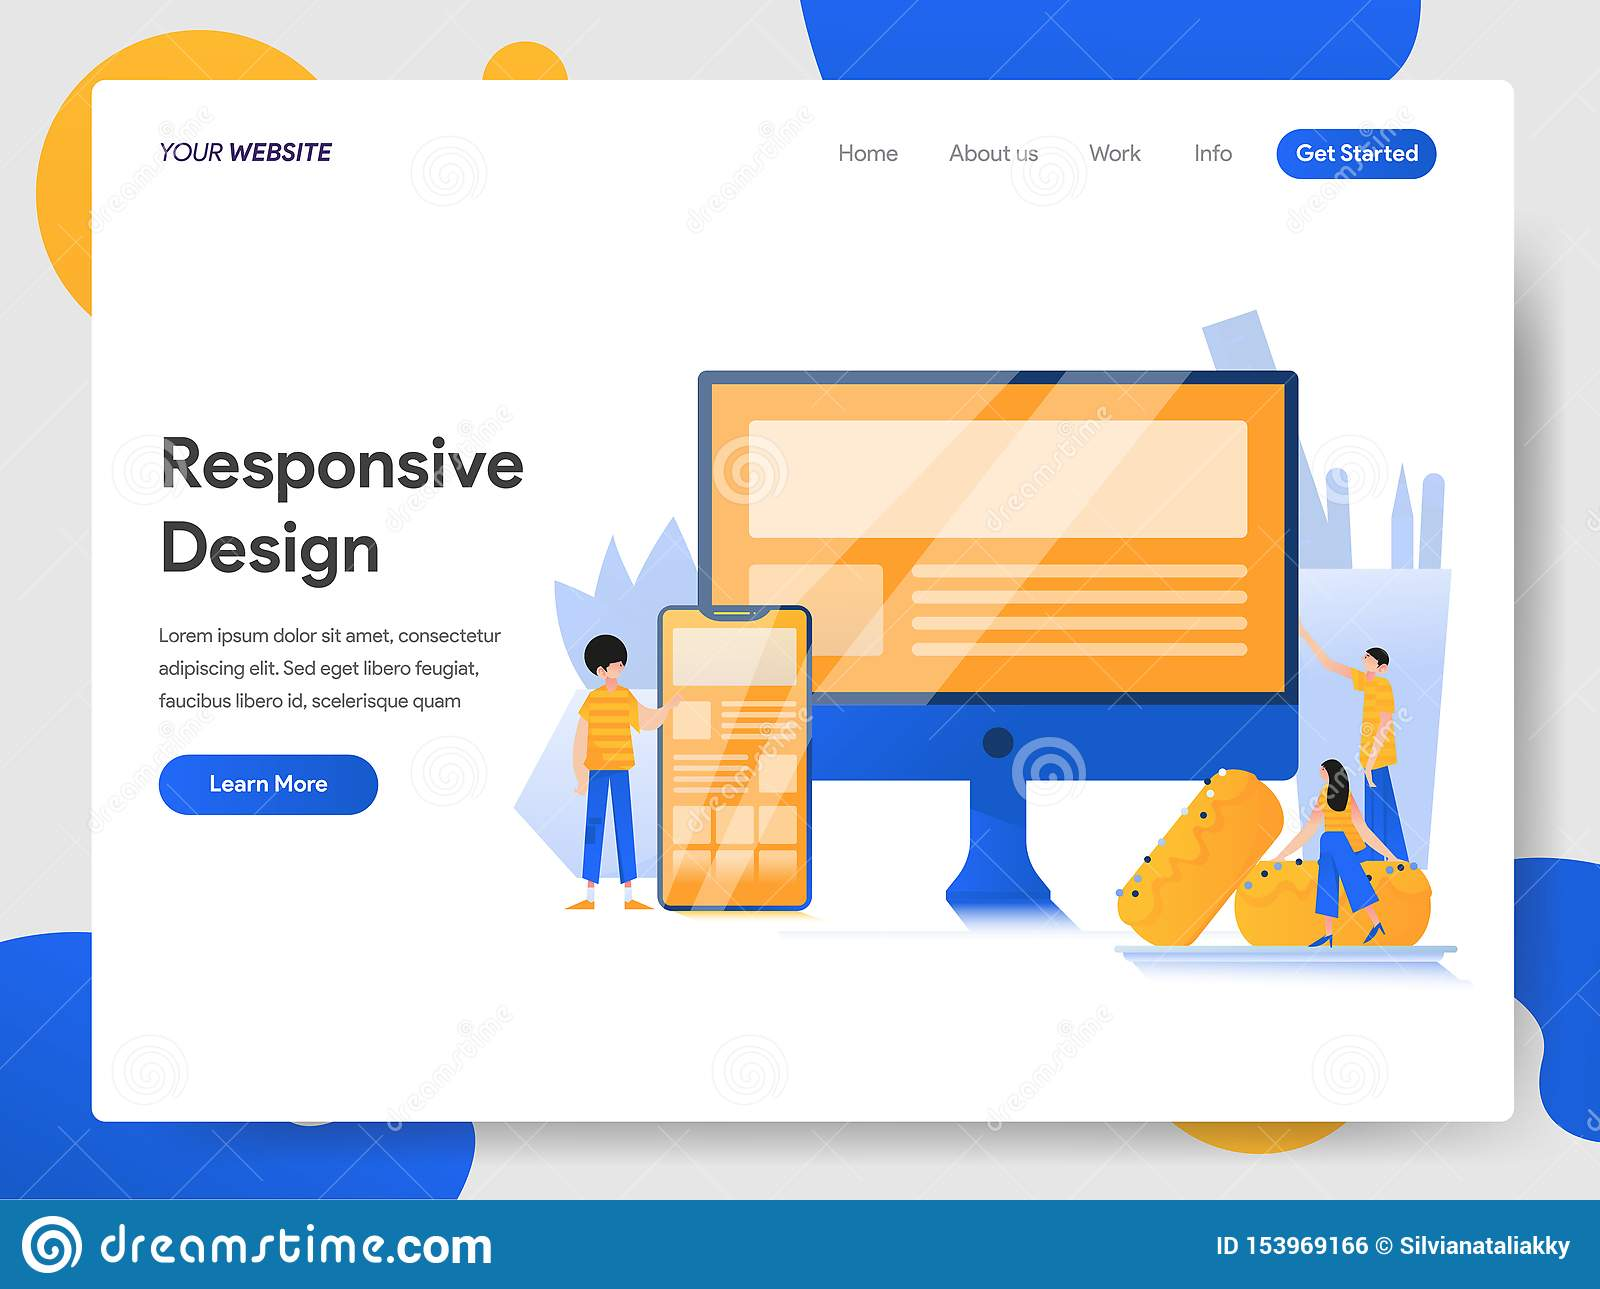 Landing page template of Responsive Design Illustration Concept. Modern design concept of web page design for website and mobile